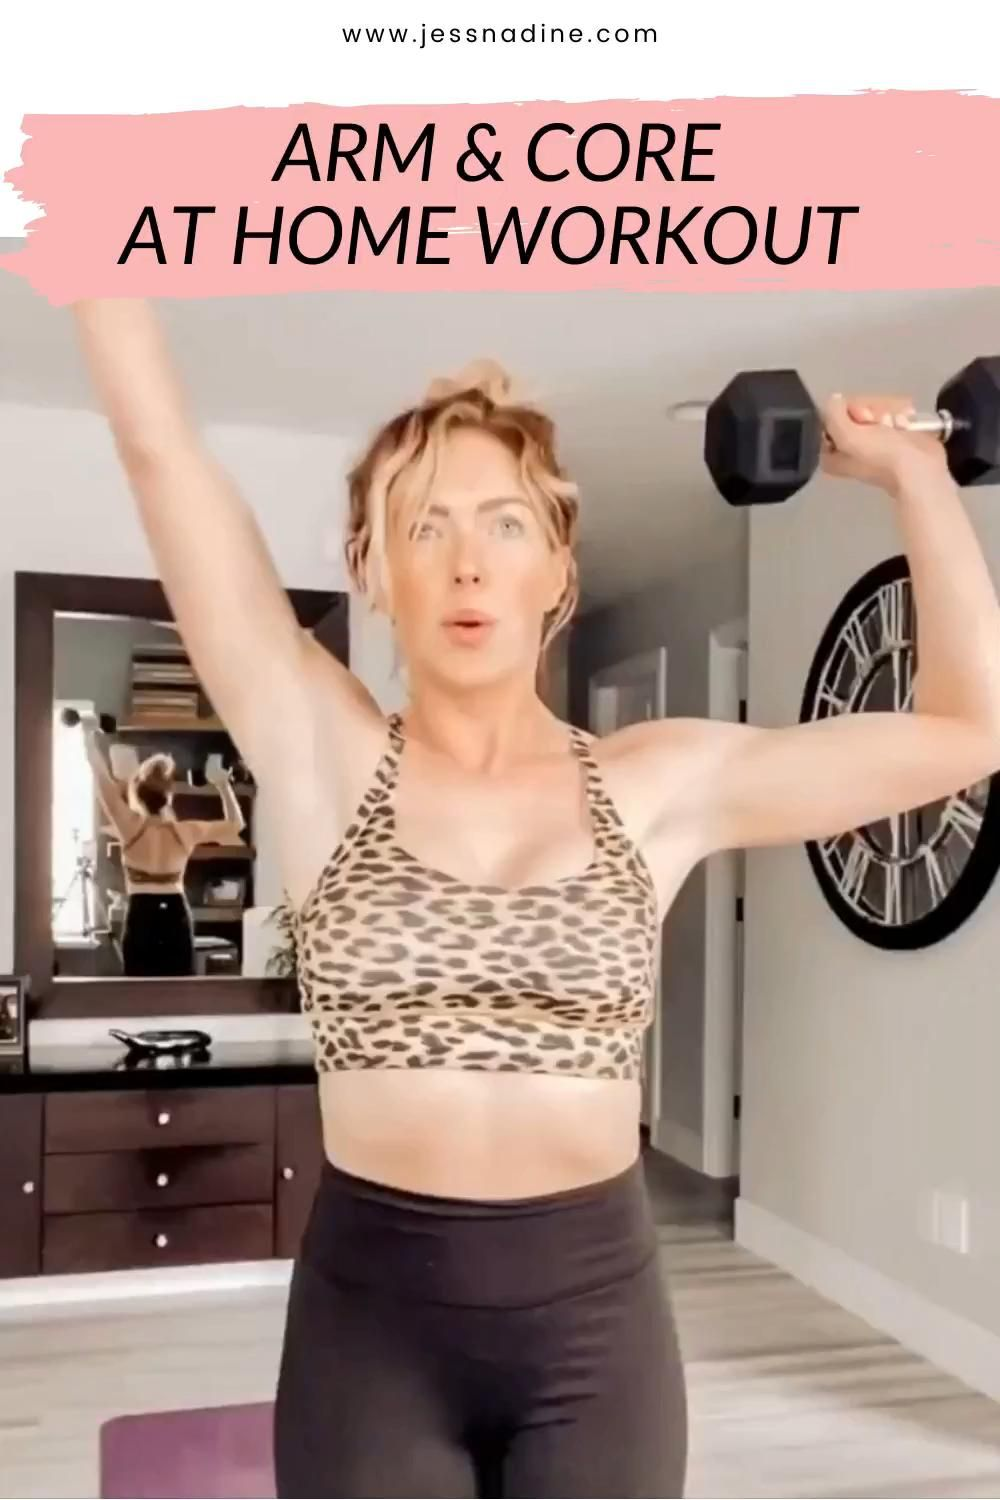 ARM AND CORE AT HOME WORKOUT